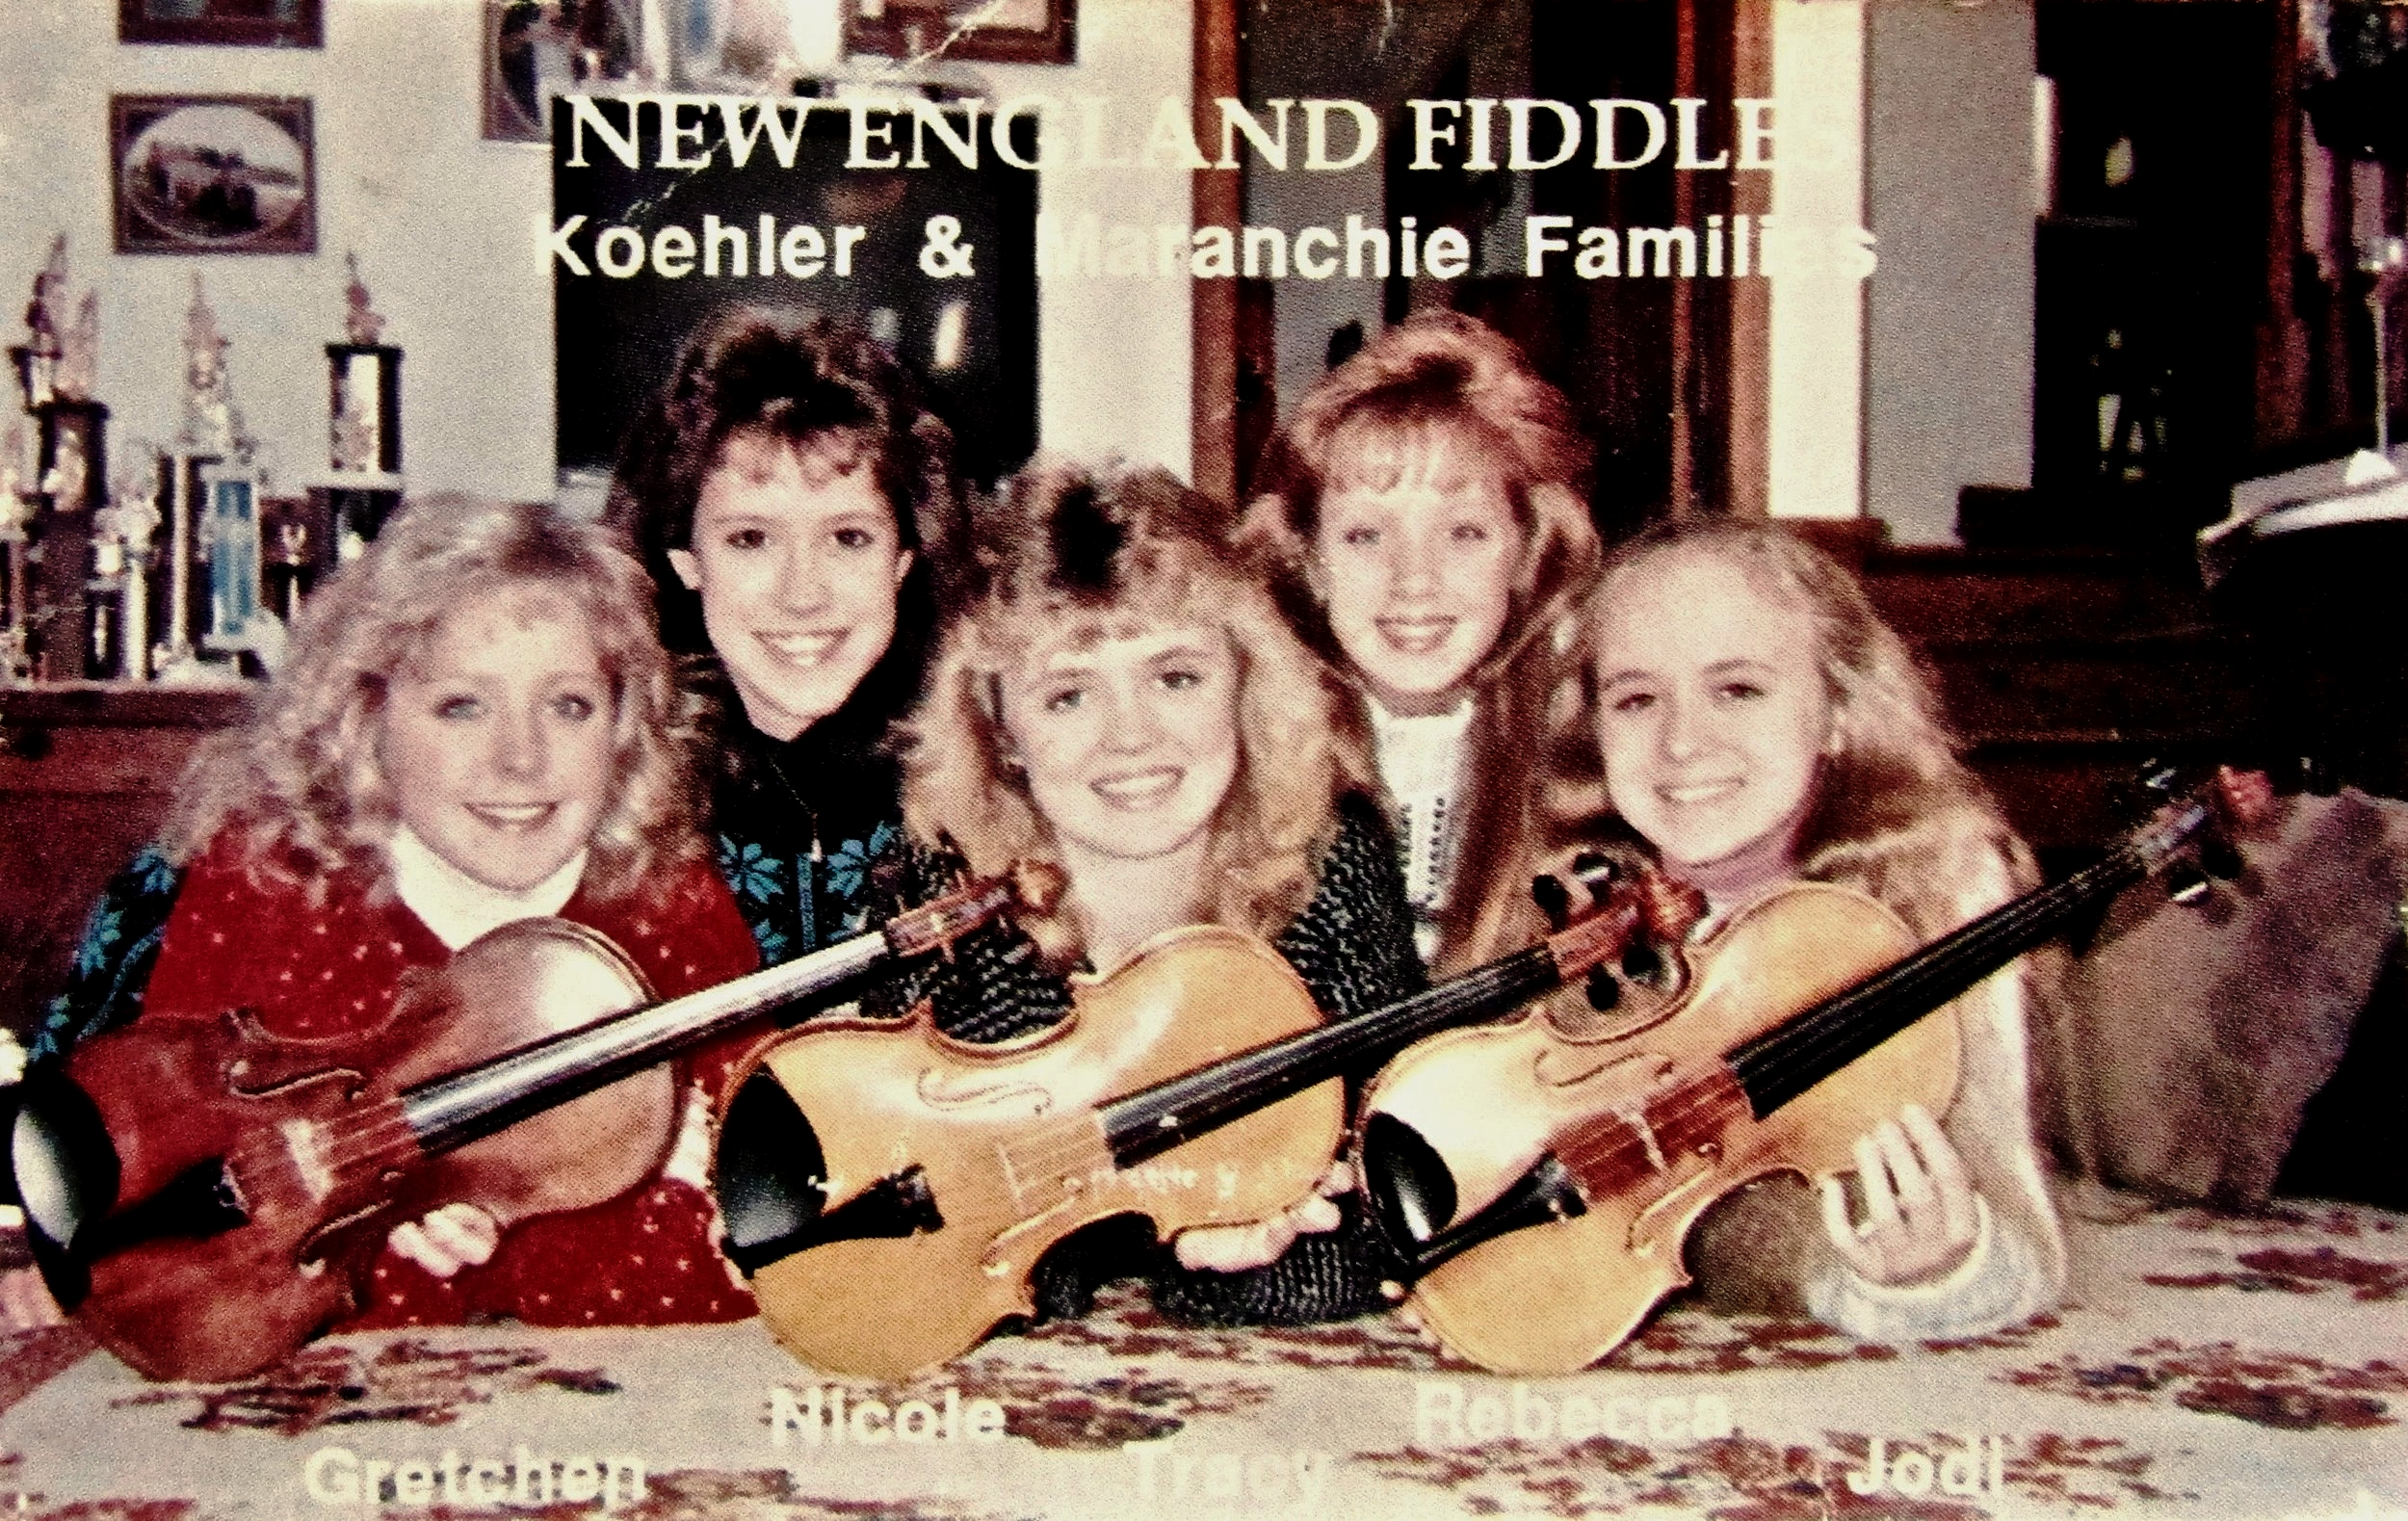 NEW ENGLAND FIDDLES~30th Anniversary ! - In 1988, The Koehler & Maranchie Families recorded an album that became an instant classic in the Northeast US and Canadian contest scene. Teenagers Gretchen Koehler, Nicole Maranchie (Engstrom), Tracy Maranchie (Gallagher), Rebecca Koehler and Jodi Maranchie played 35+ tunes in harmony with guest Duane Perry. The cassette celebrates its 30th anniversary this year.